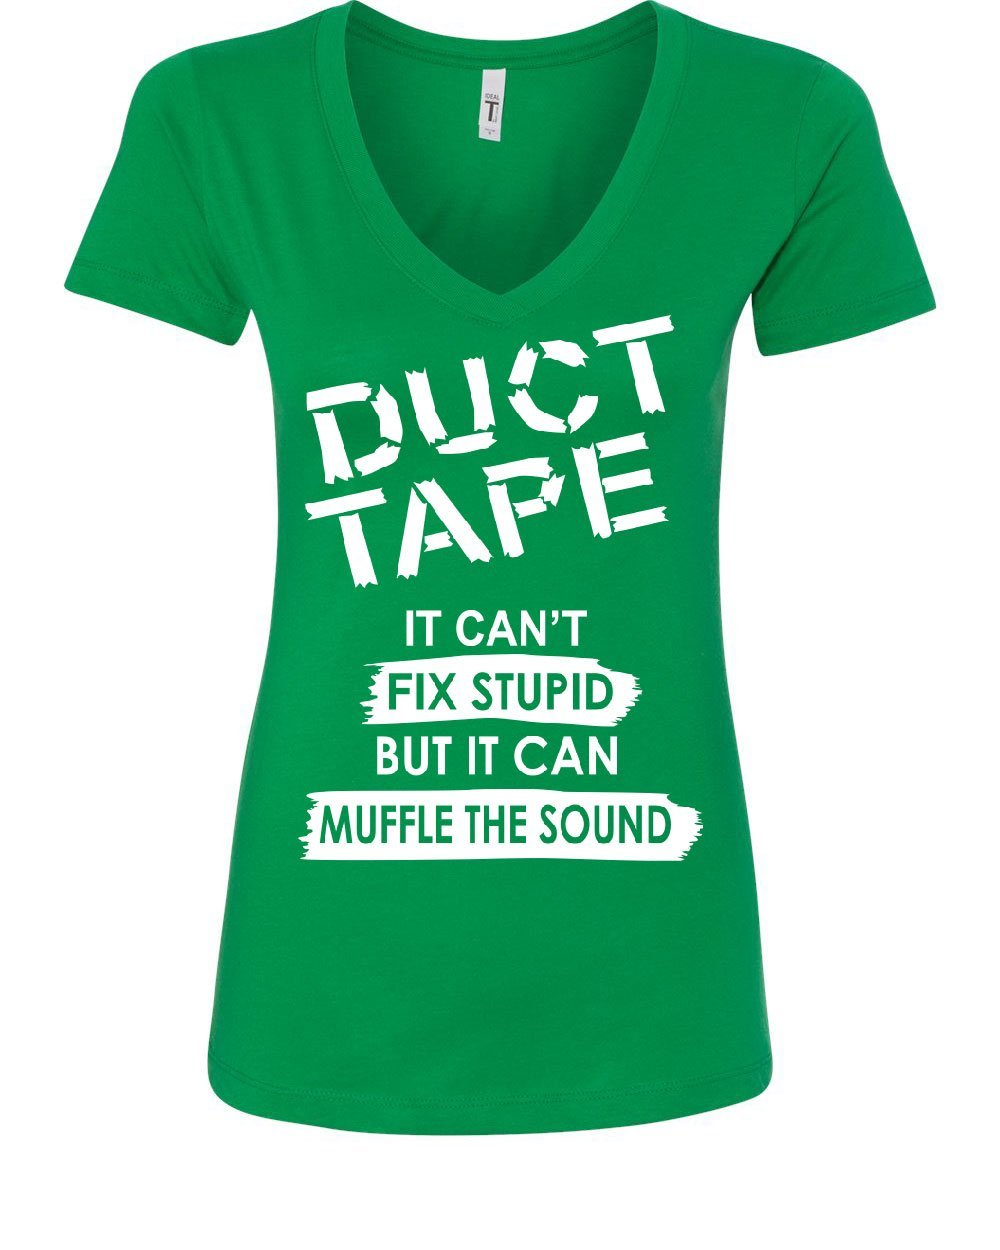 Duct Tape It Can't Fix Stupid Women's V-Neck T-Shirt Offensive Humor Sarcastic Green L